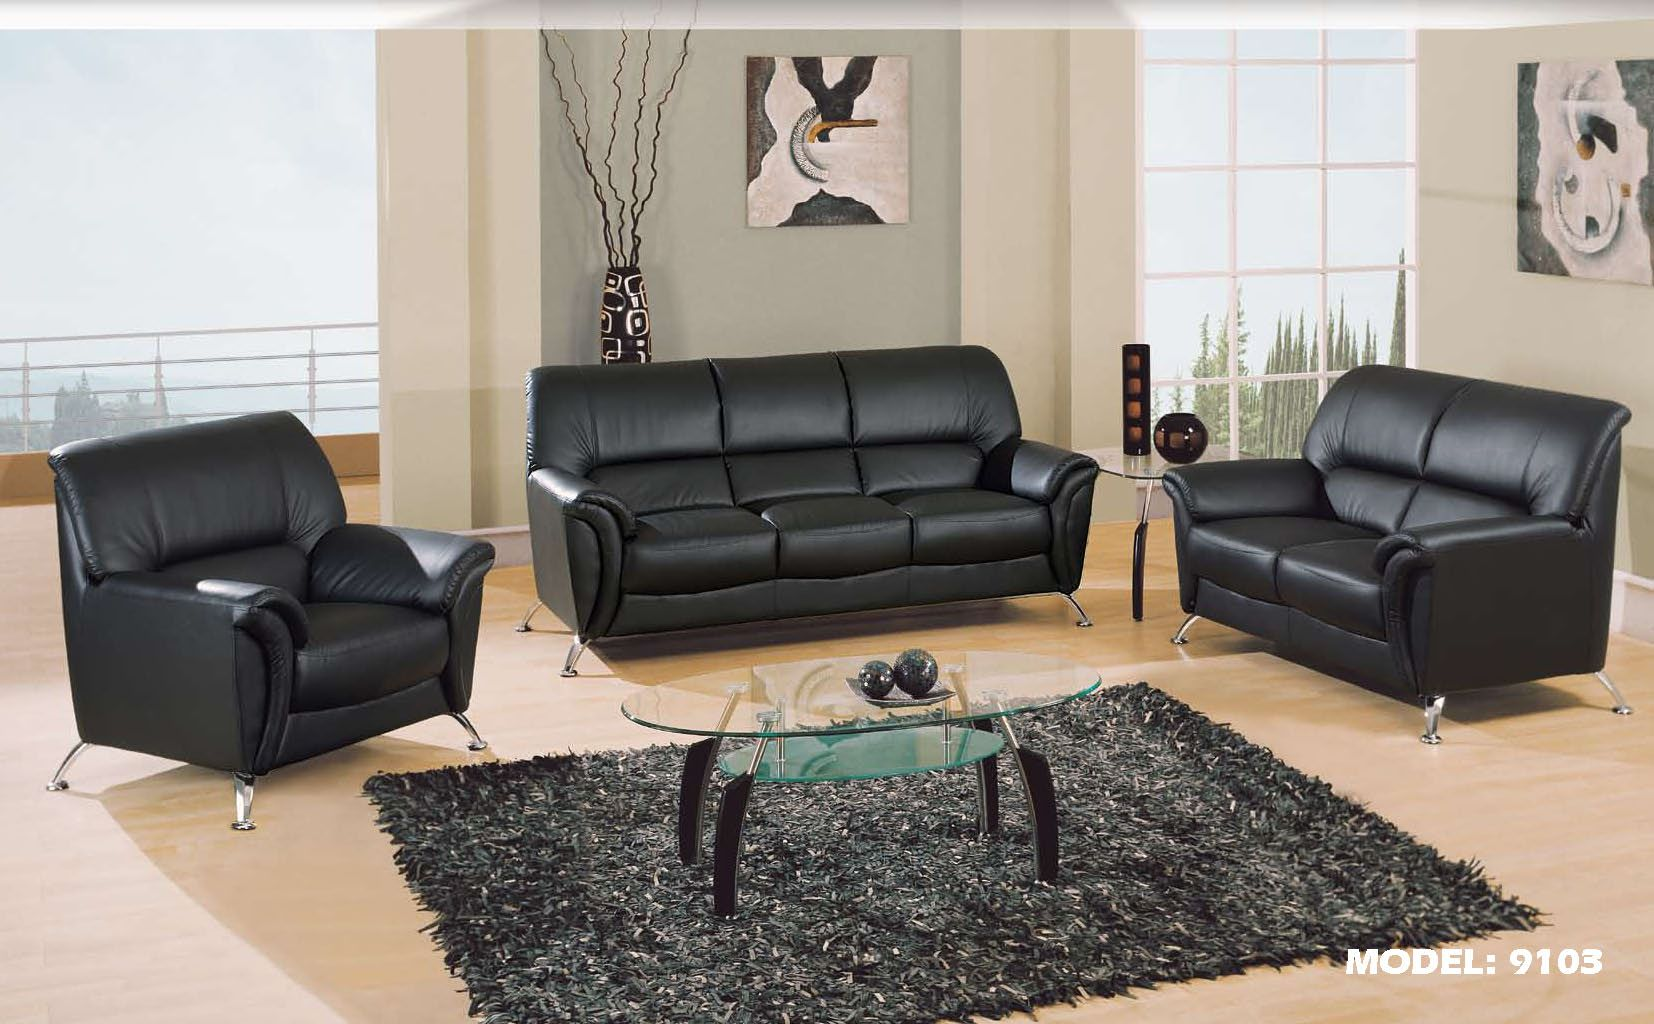 Images of sofa set designs google search sofa for Living room ideas with 3 sofas